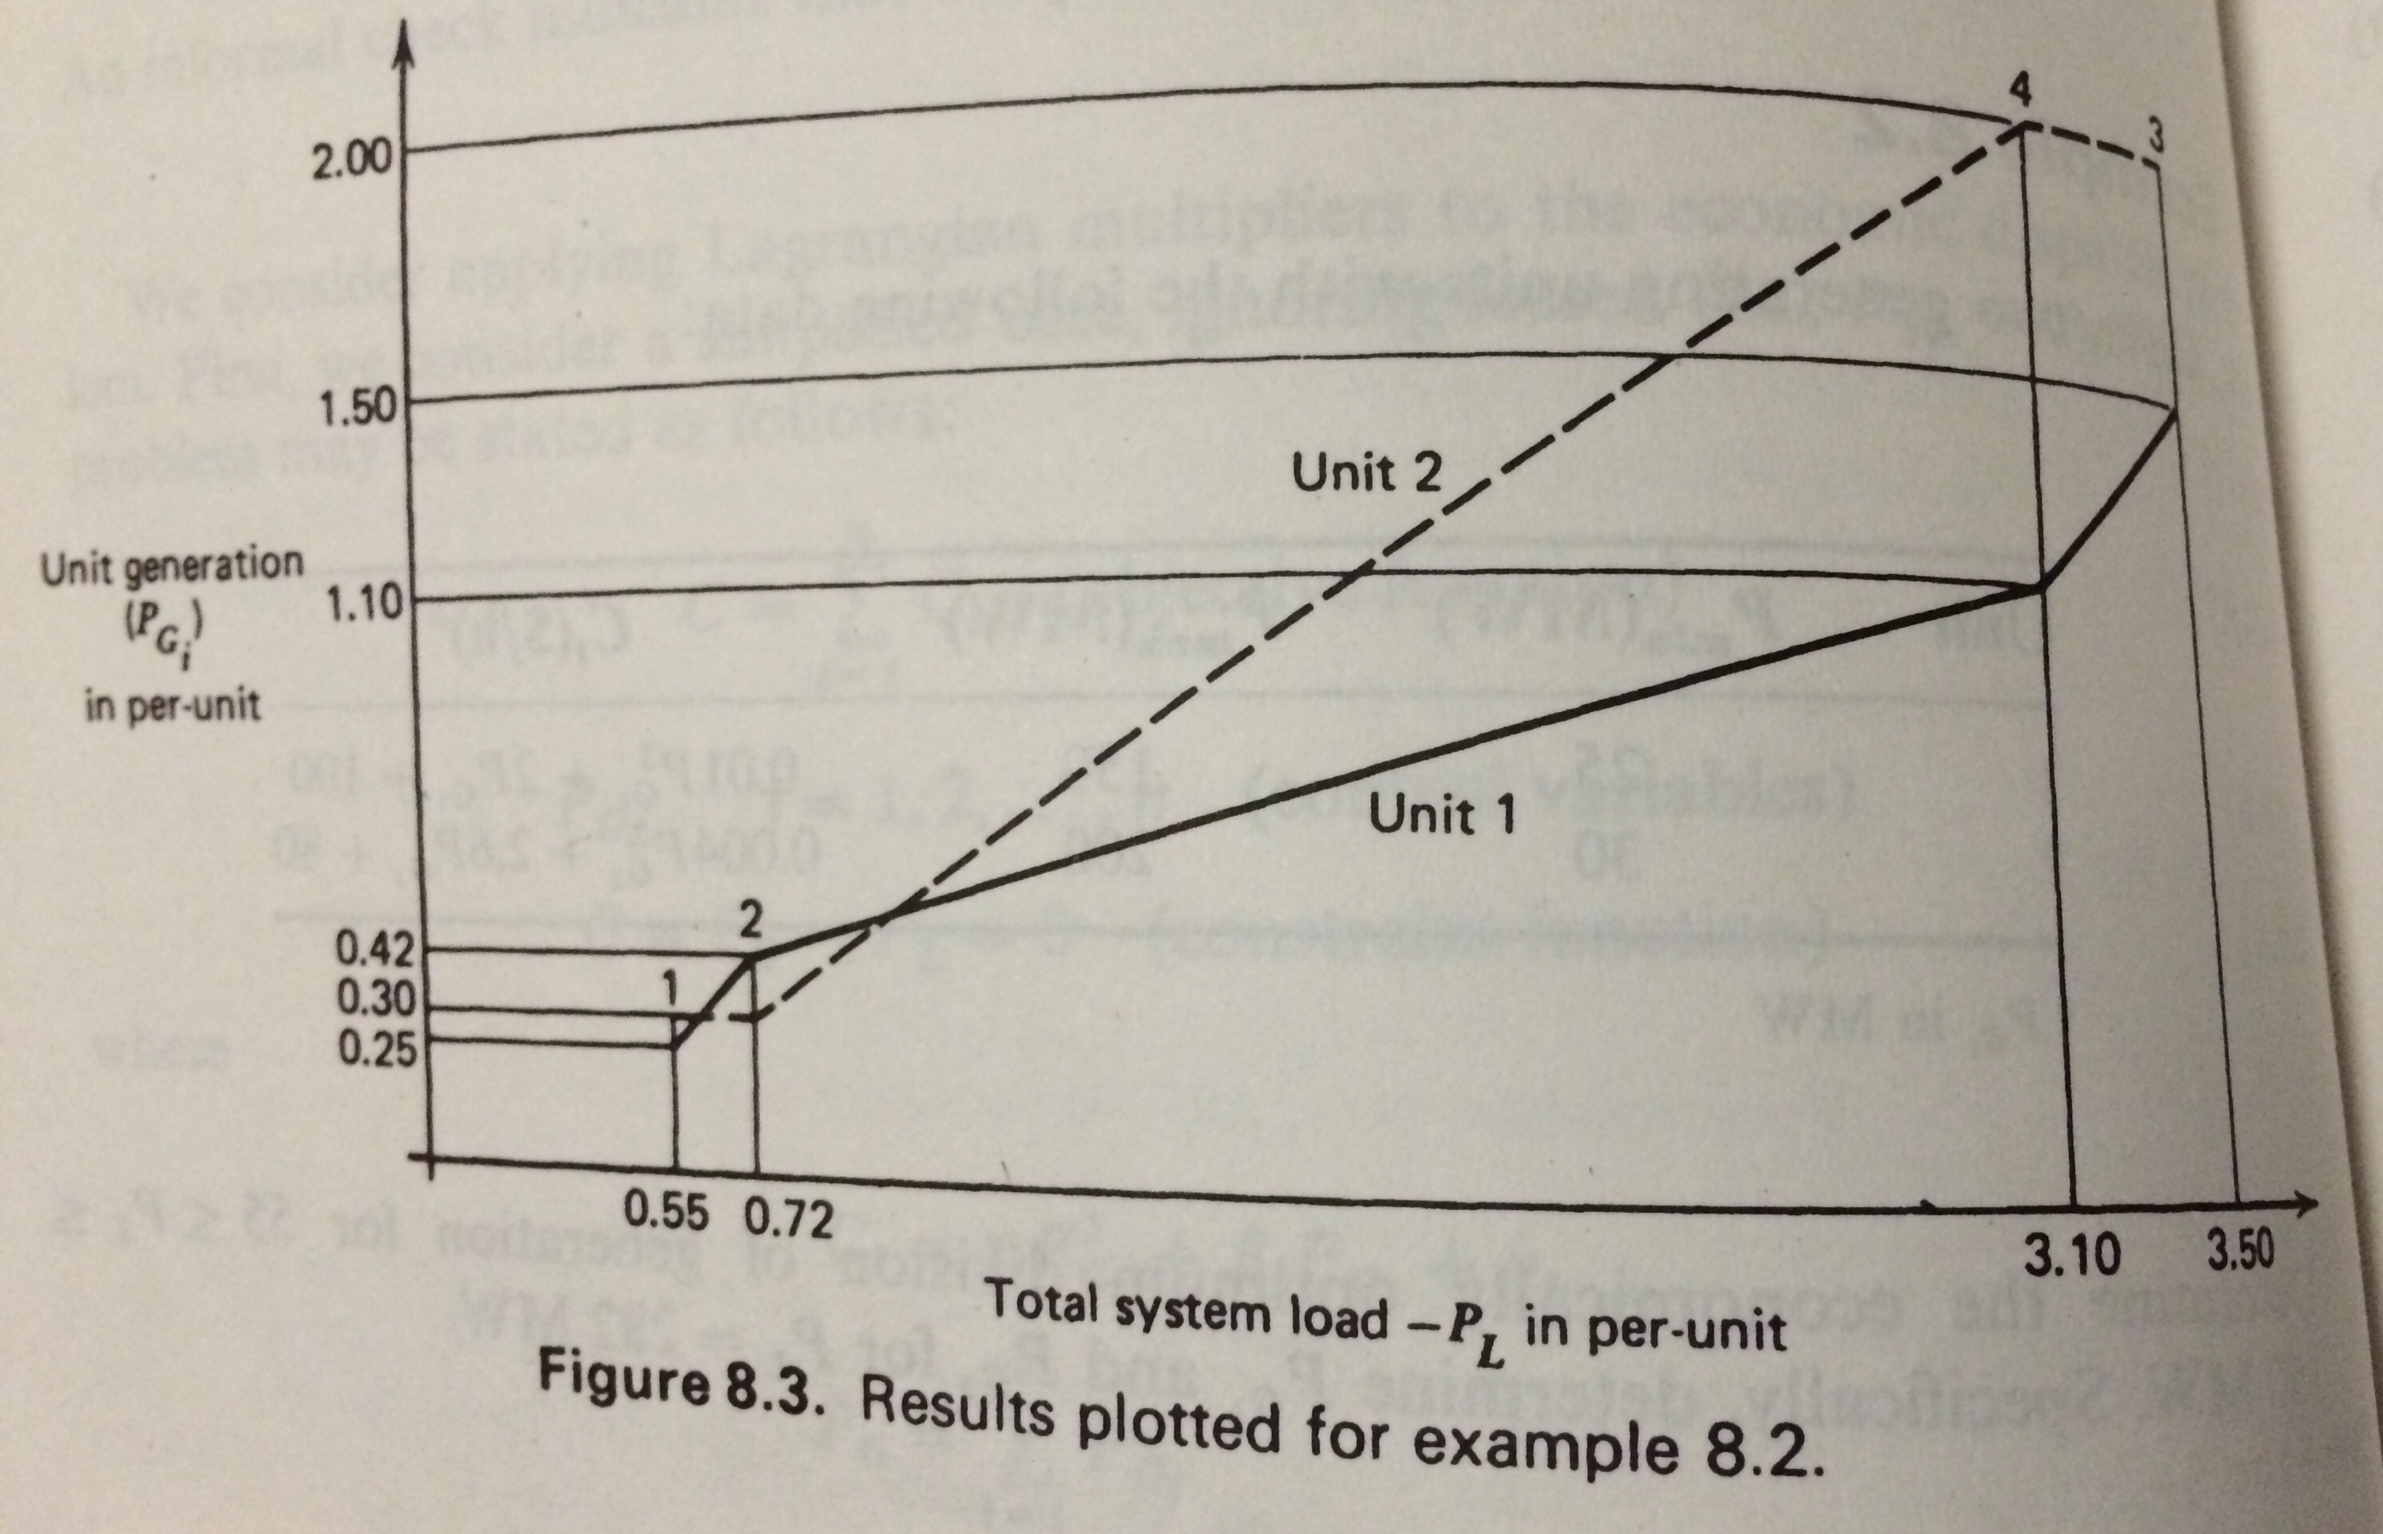 Figure 8.3. Results plotted for example 8.2. Cons